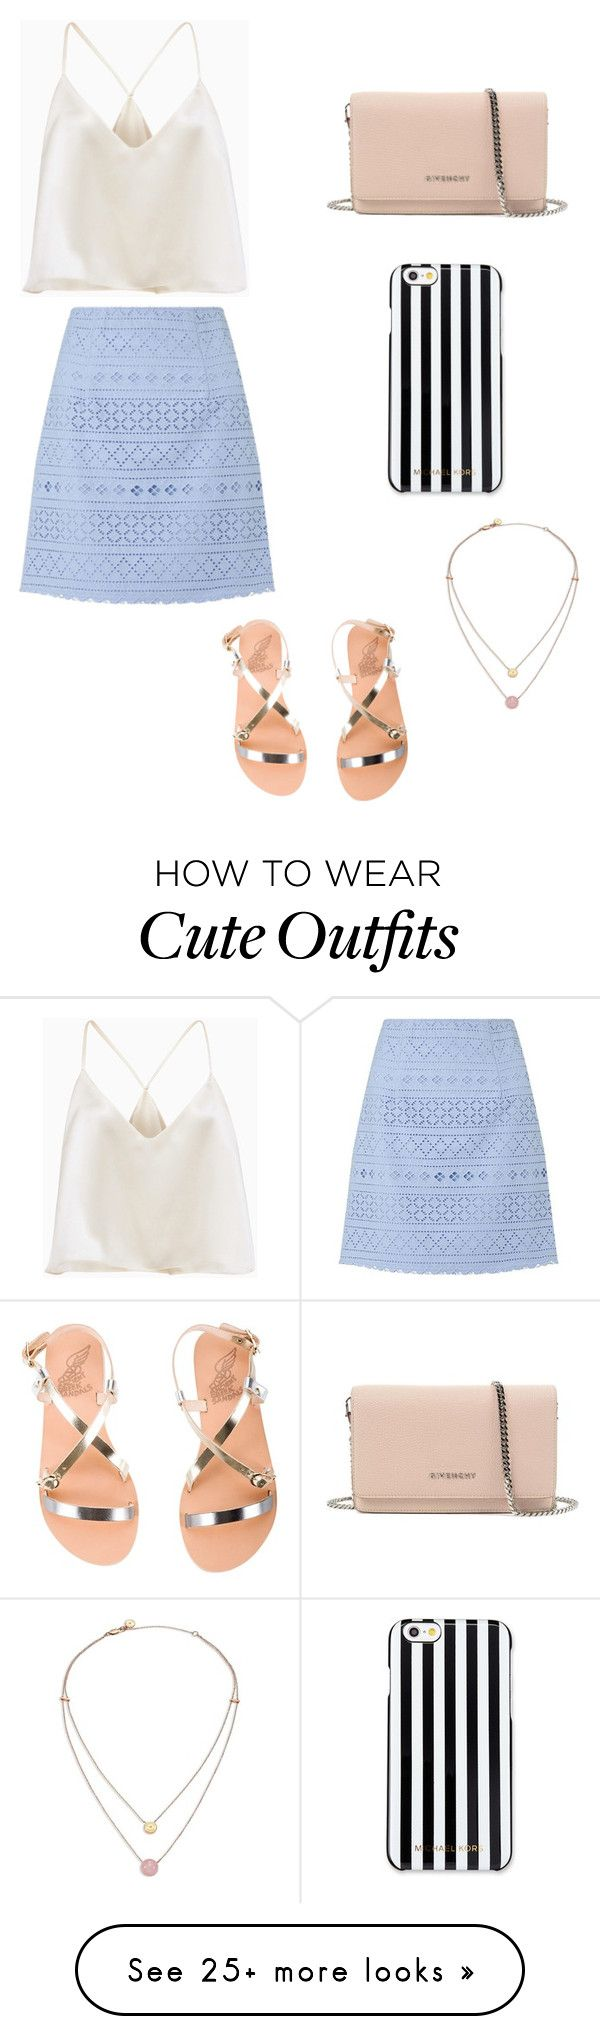 """""""Cute Summer Outfit"""" by lsantana13 on Polyvore featuring Lipsy, Givenchy, MICHAEL Michael Kors, Michael Kors and Ancient Greek Sandals"""